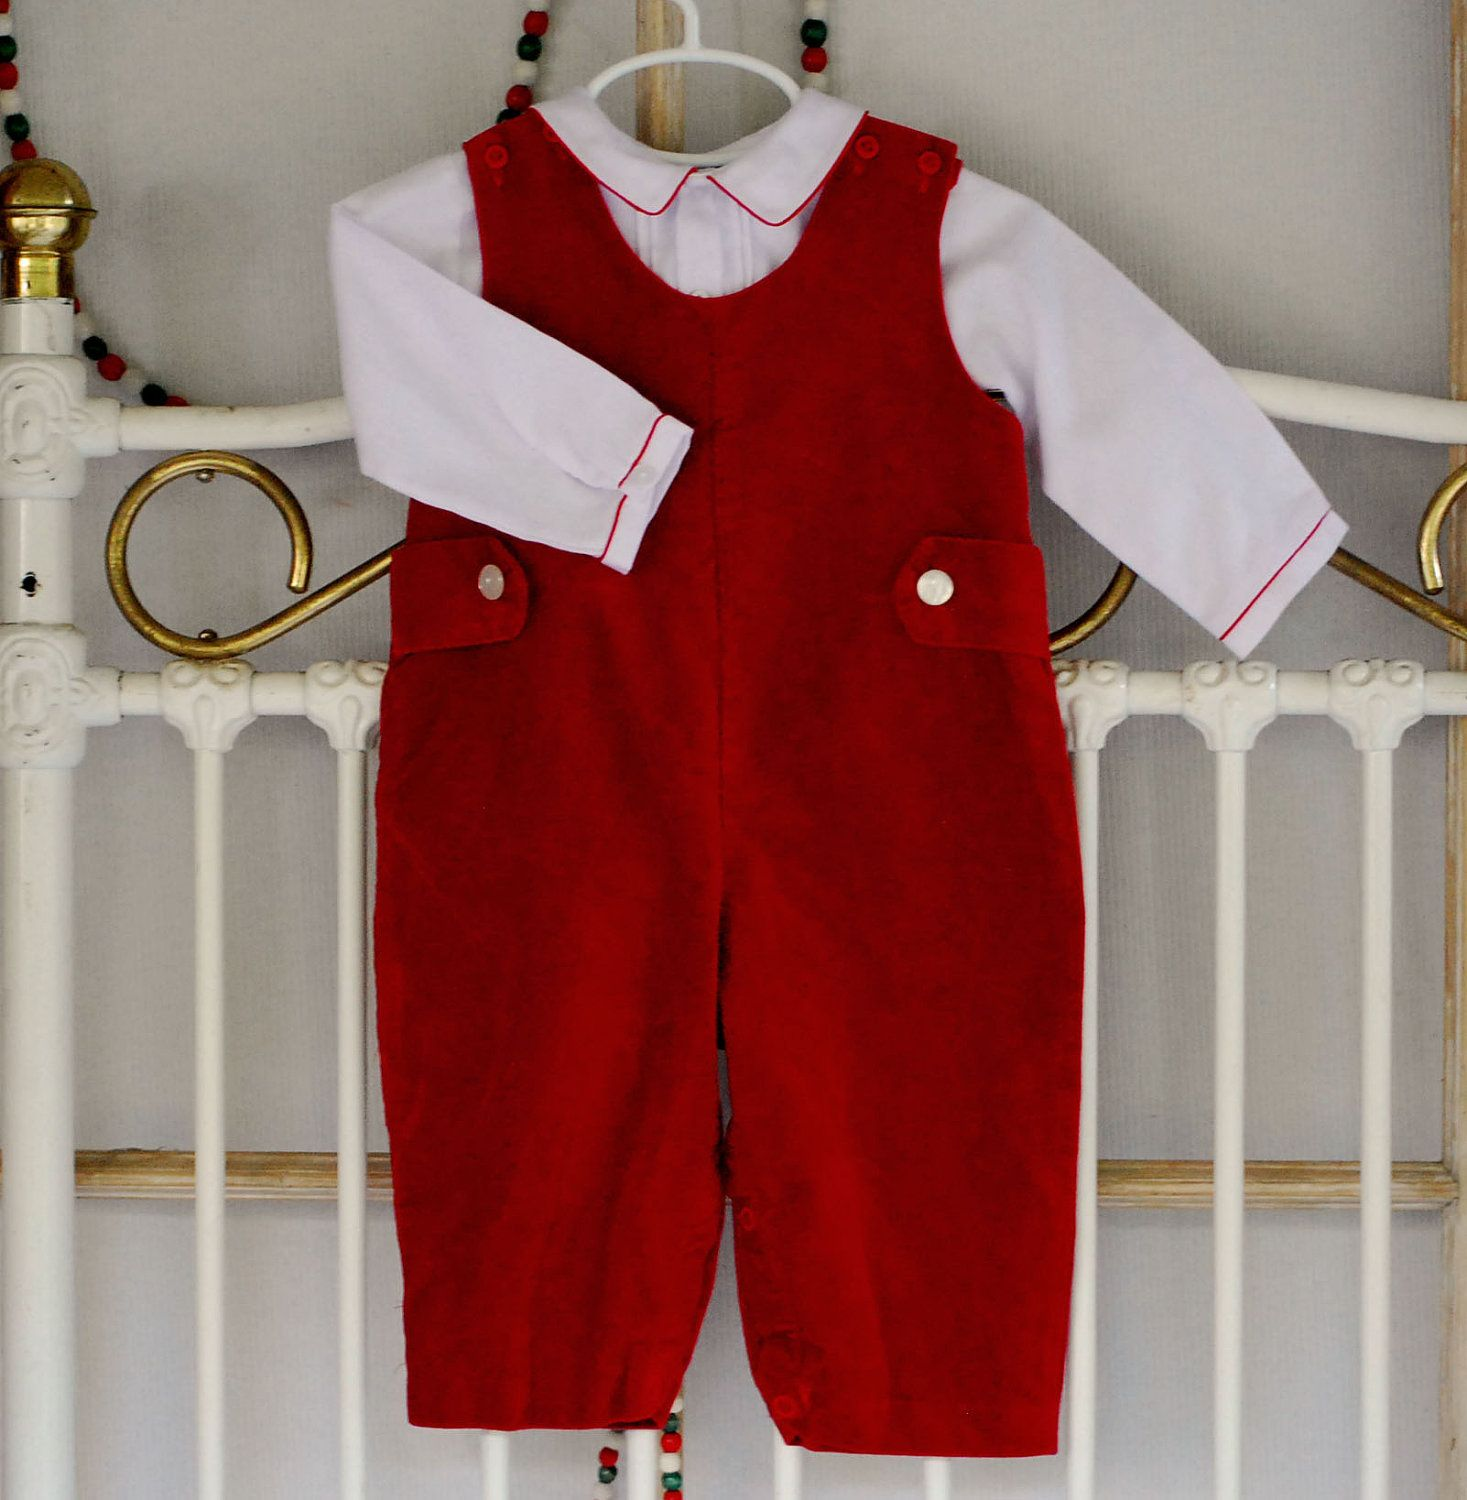 54e562f03 Red velvet Christmas outfit for baby boy. size 9 month. Fall Winter boy  clothes. button up shirt and velvet overalls. Holiday baby boy.. $17.00,  via Etsy.